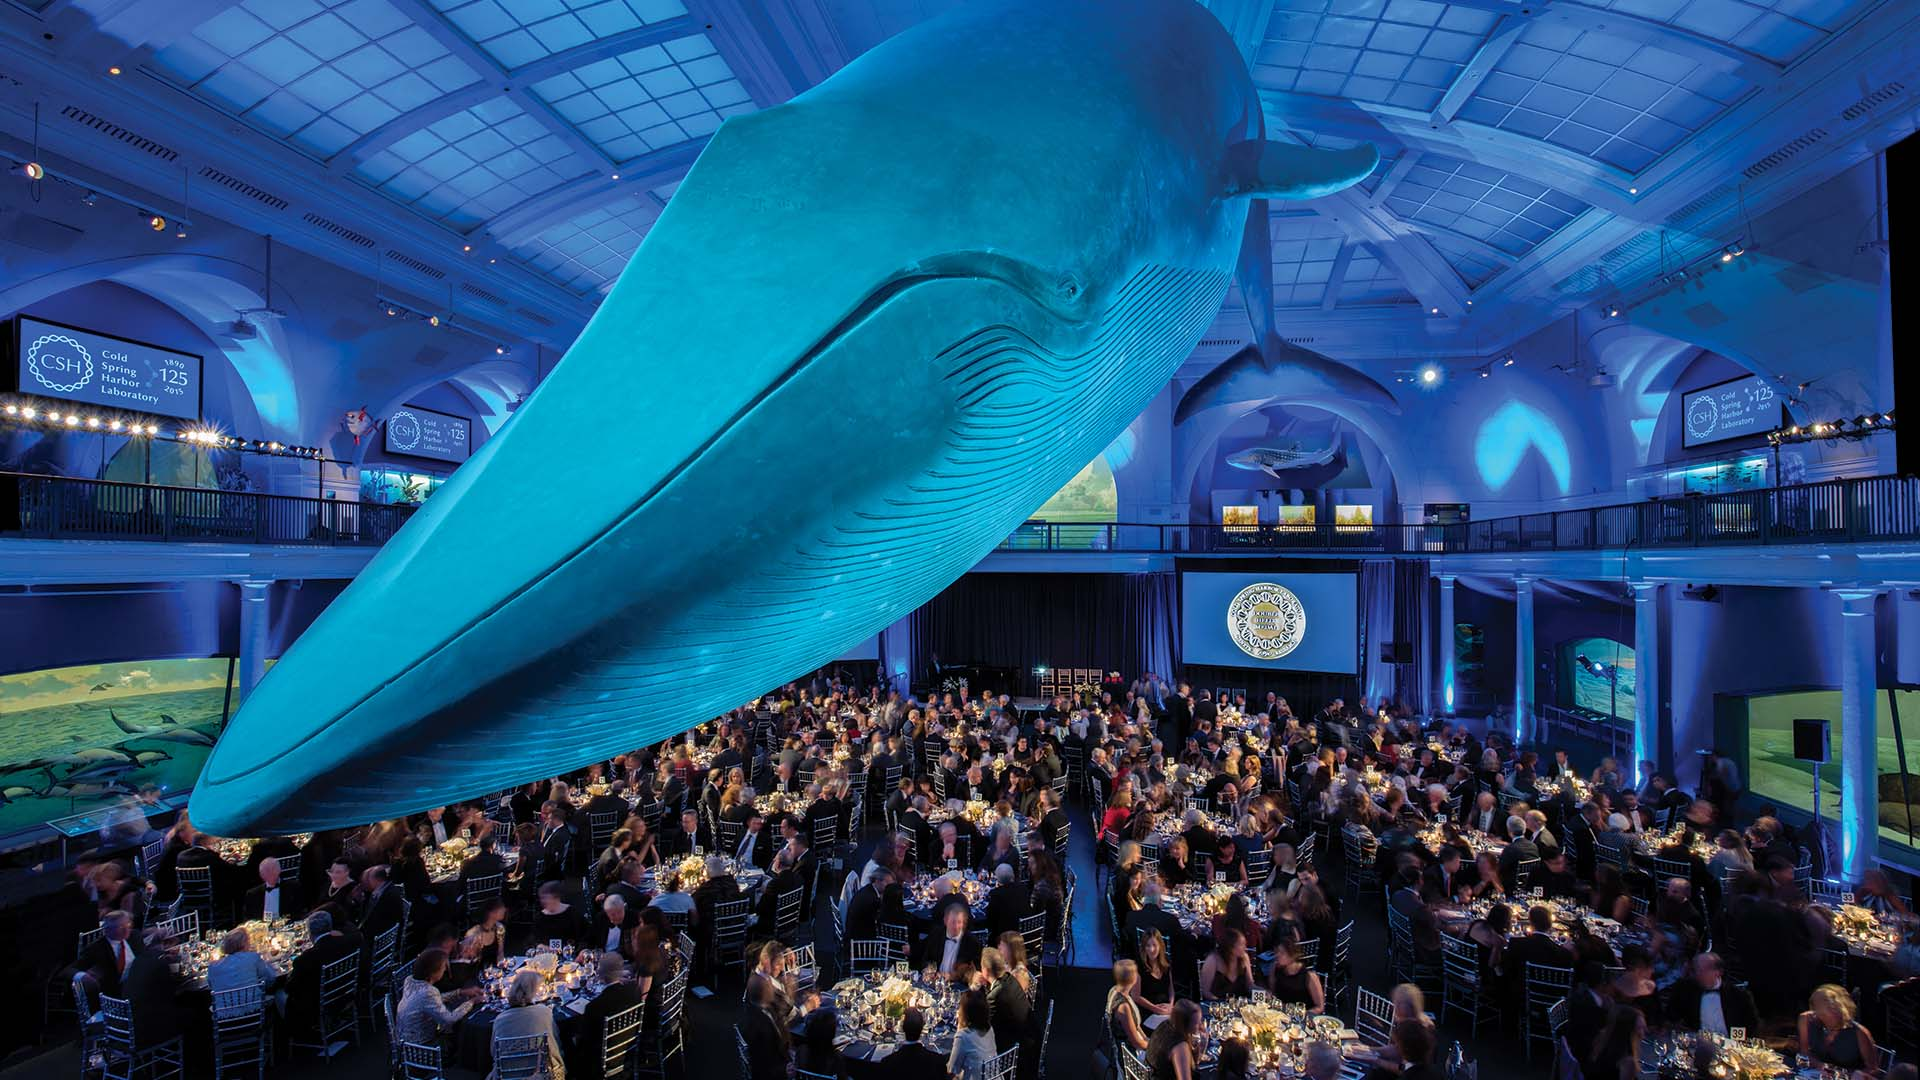 photo of whale at NYC Museum of Natural History